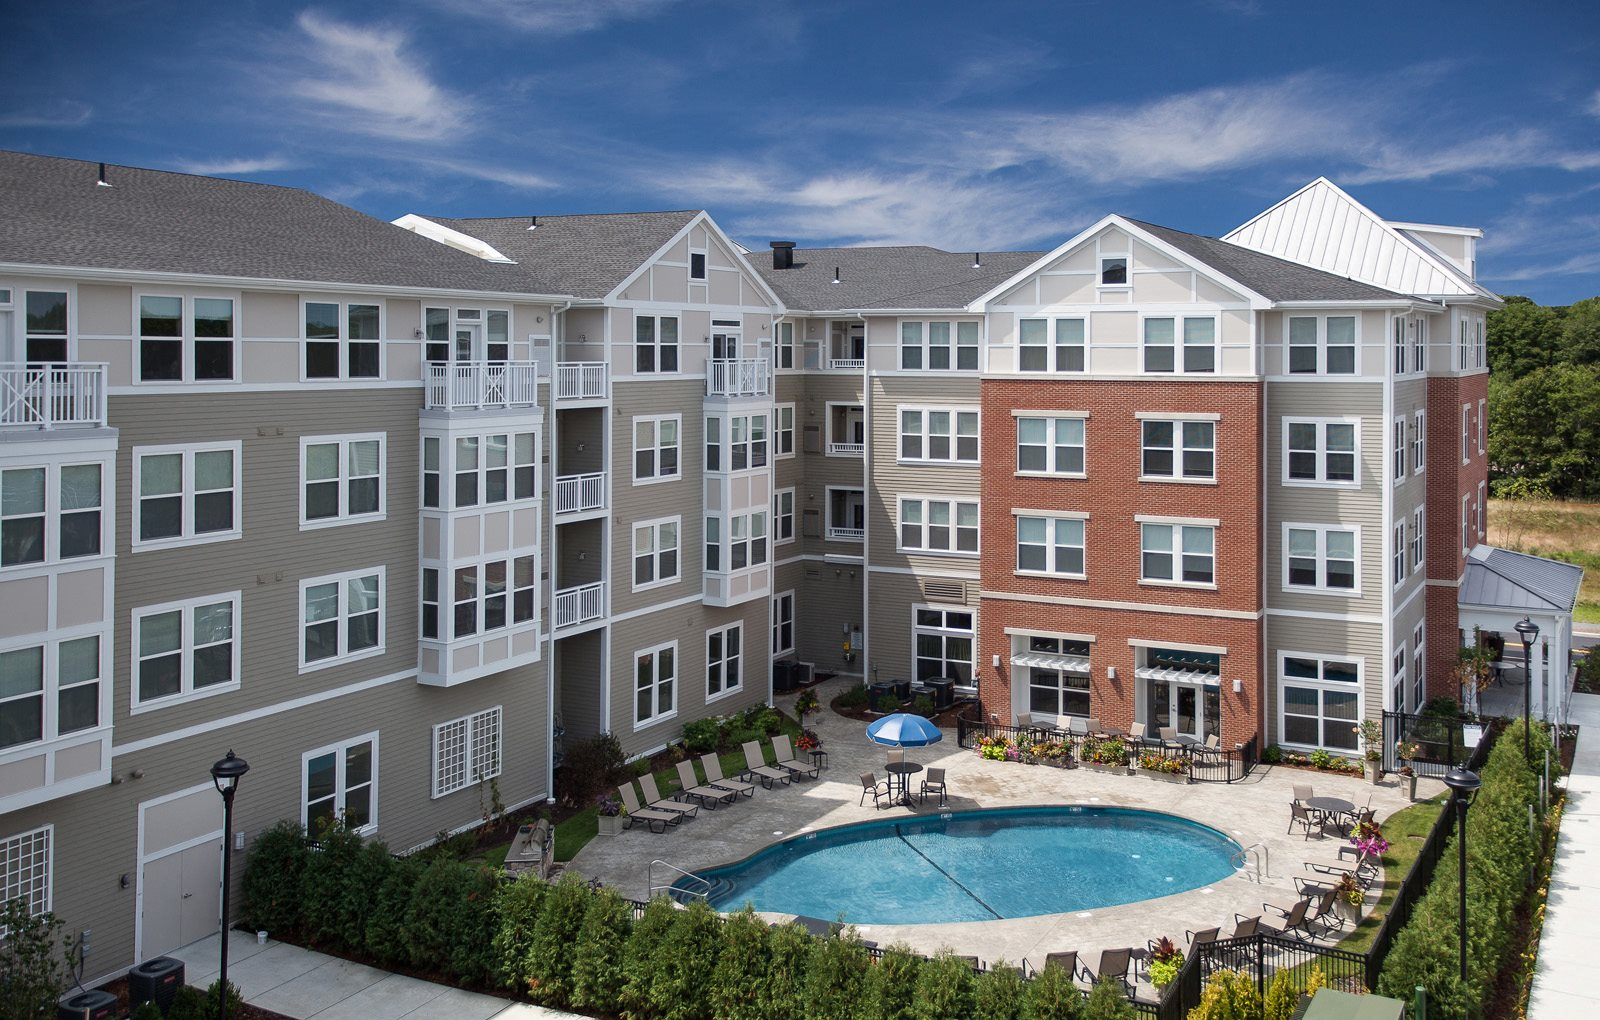 The Commons at SouthField Apartments Weymouth